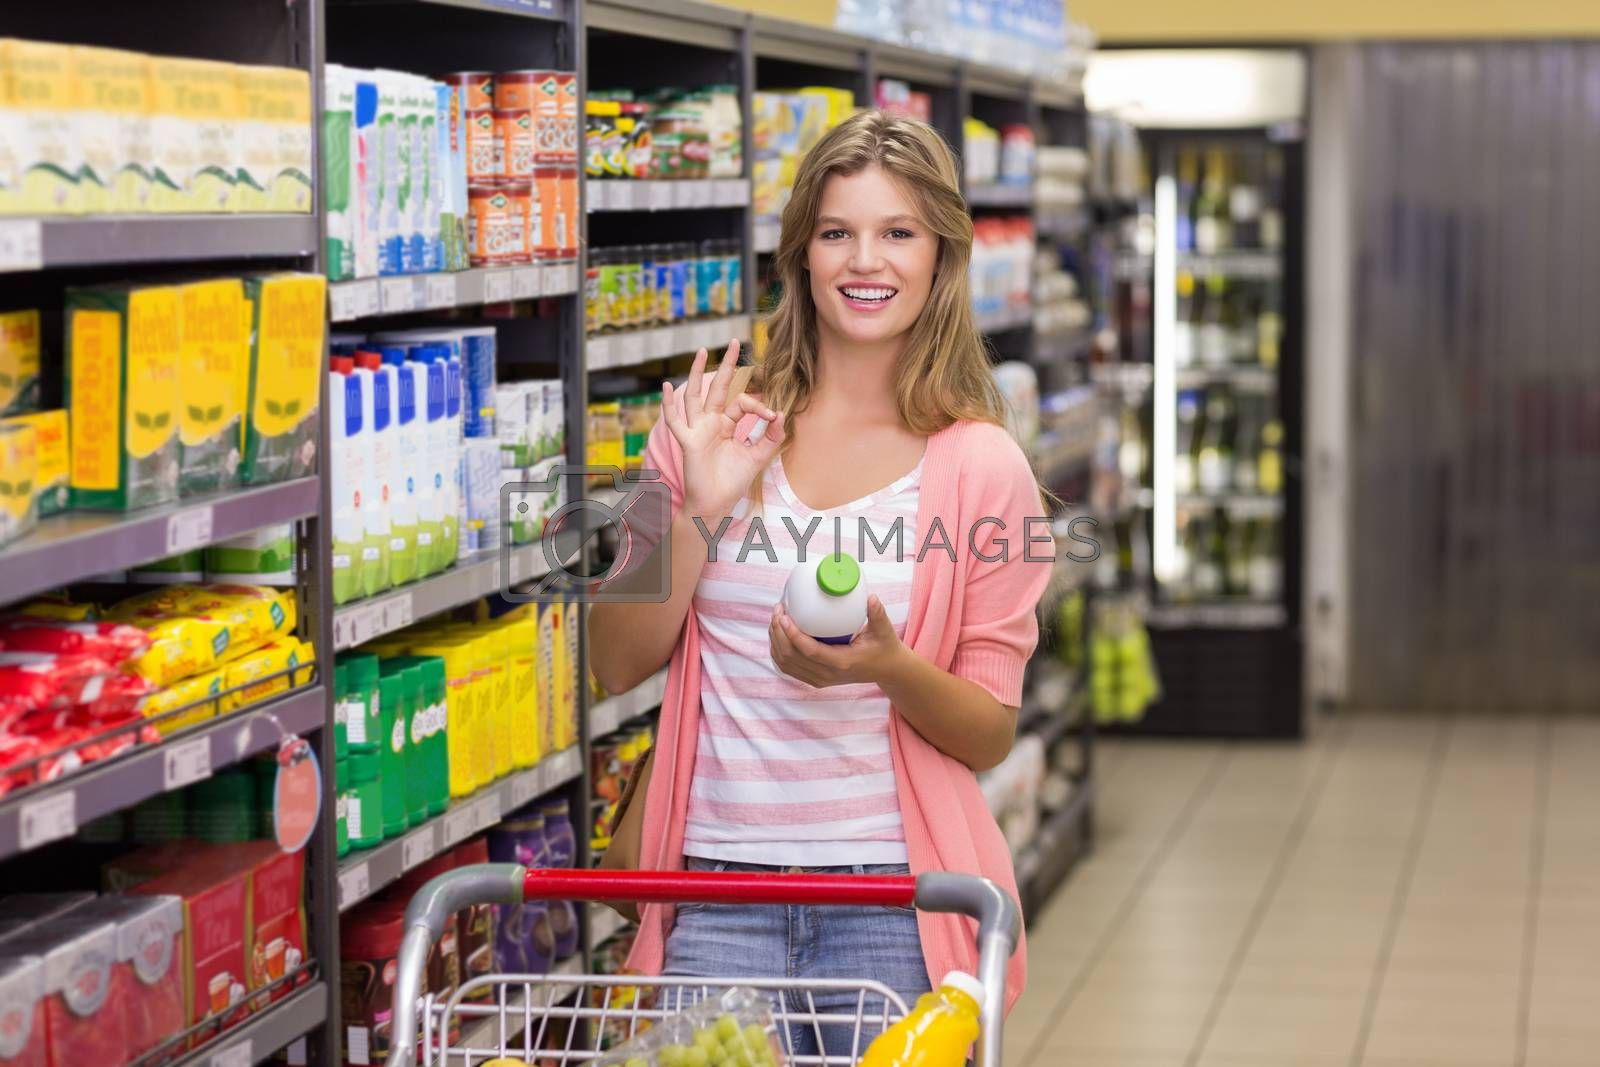 Royalty free image of Portrait of a smiling pretty blonde woman buying products  by Wavebreakmedia